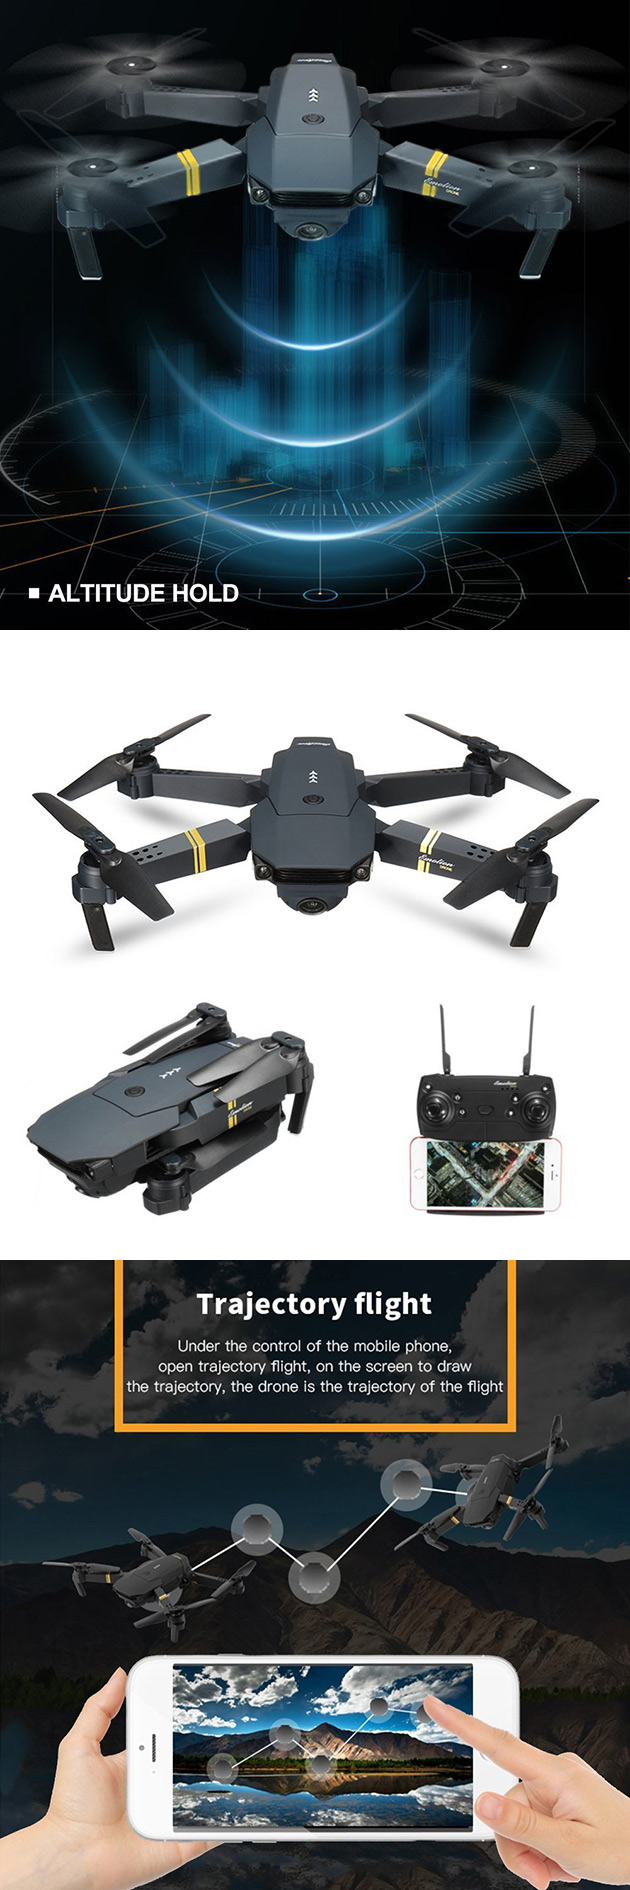 Don't Pay $80, Get the DJI Mavic Pro-Inspired EACHINE E58 Folding Drone for $59.24 Shipped - Today Only